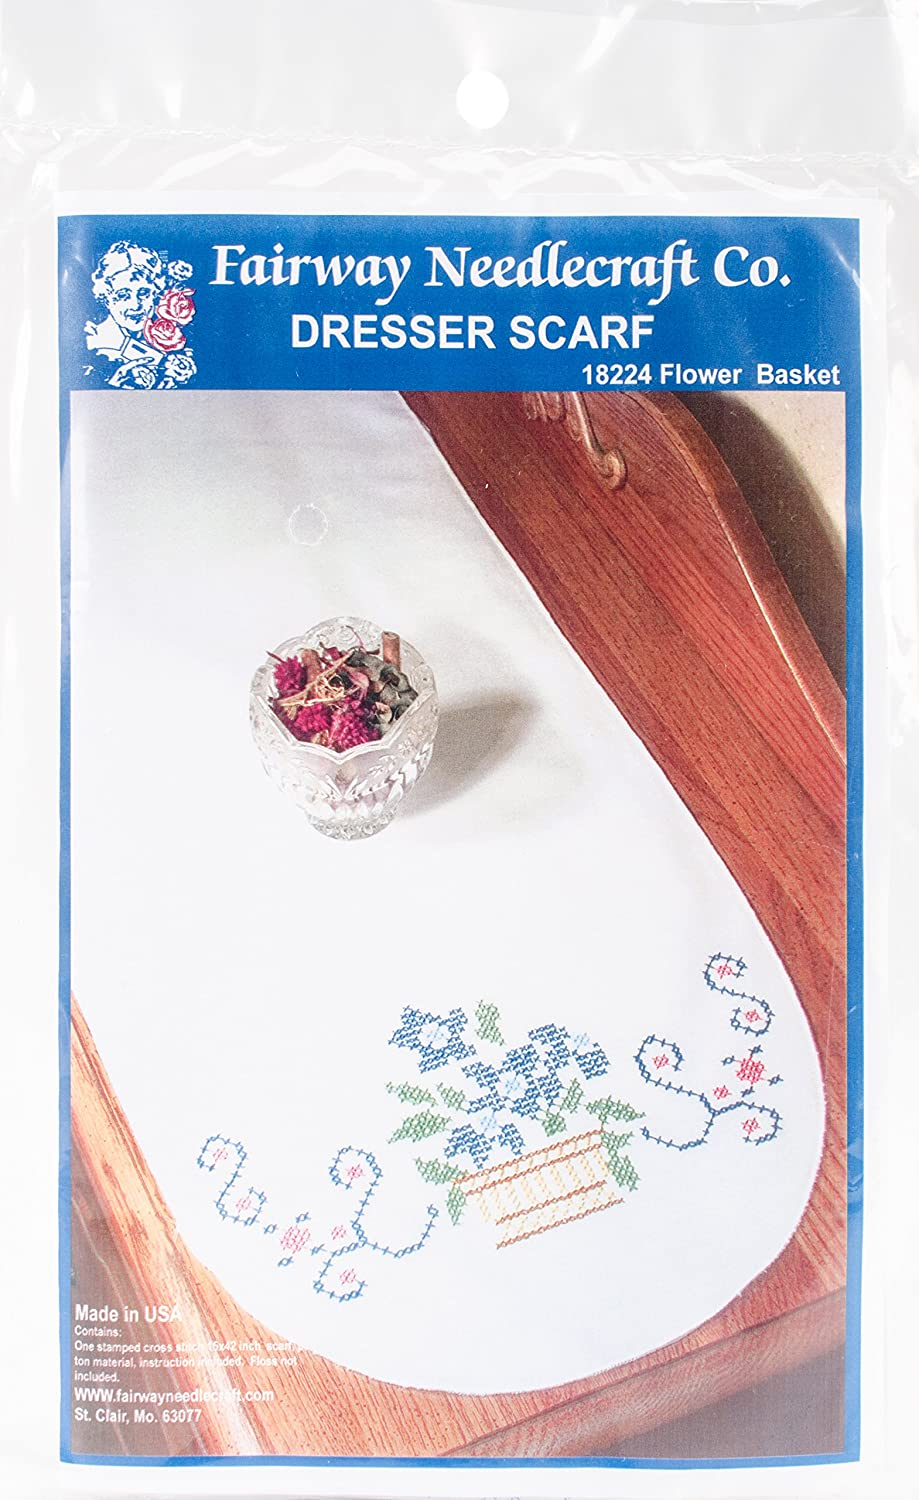 Fairway Needlecraft 18224 Dresser Scarf, Cross Stitch Flower Basket Design, White, Perle Edge